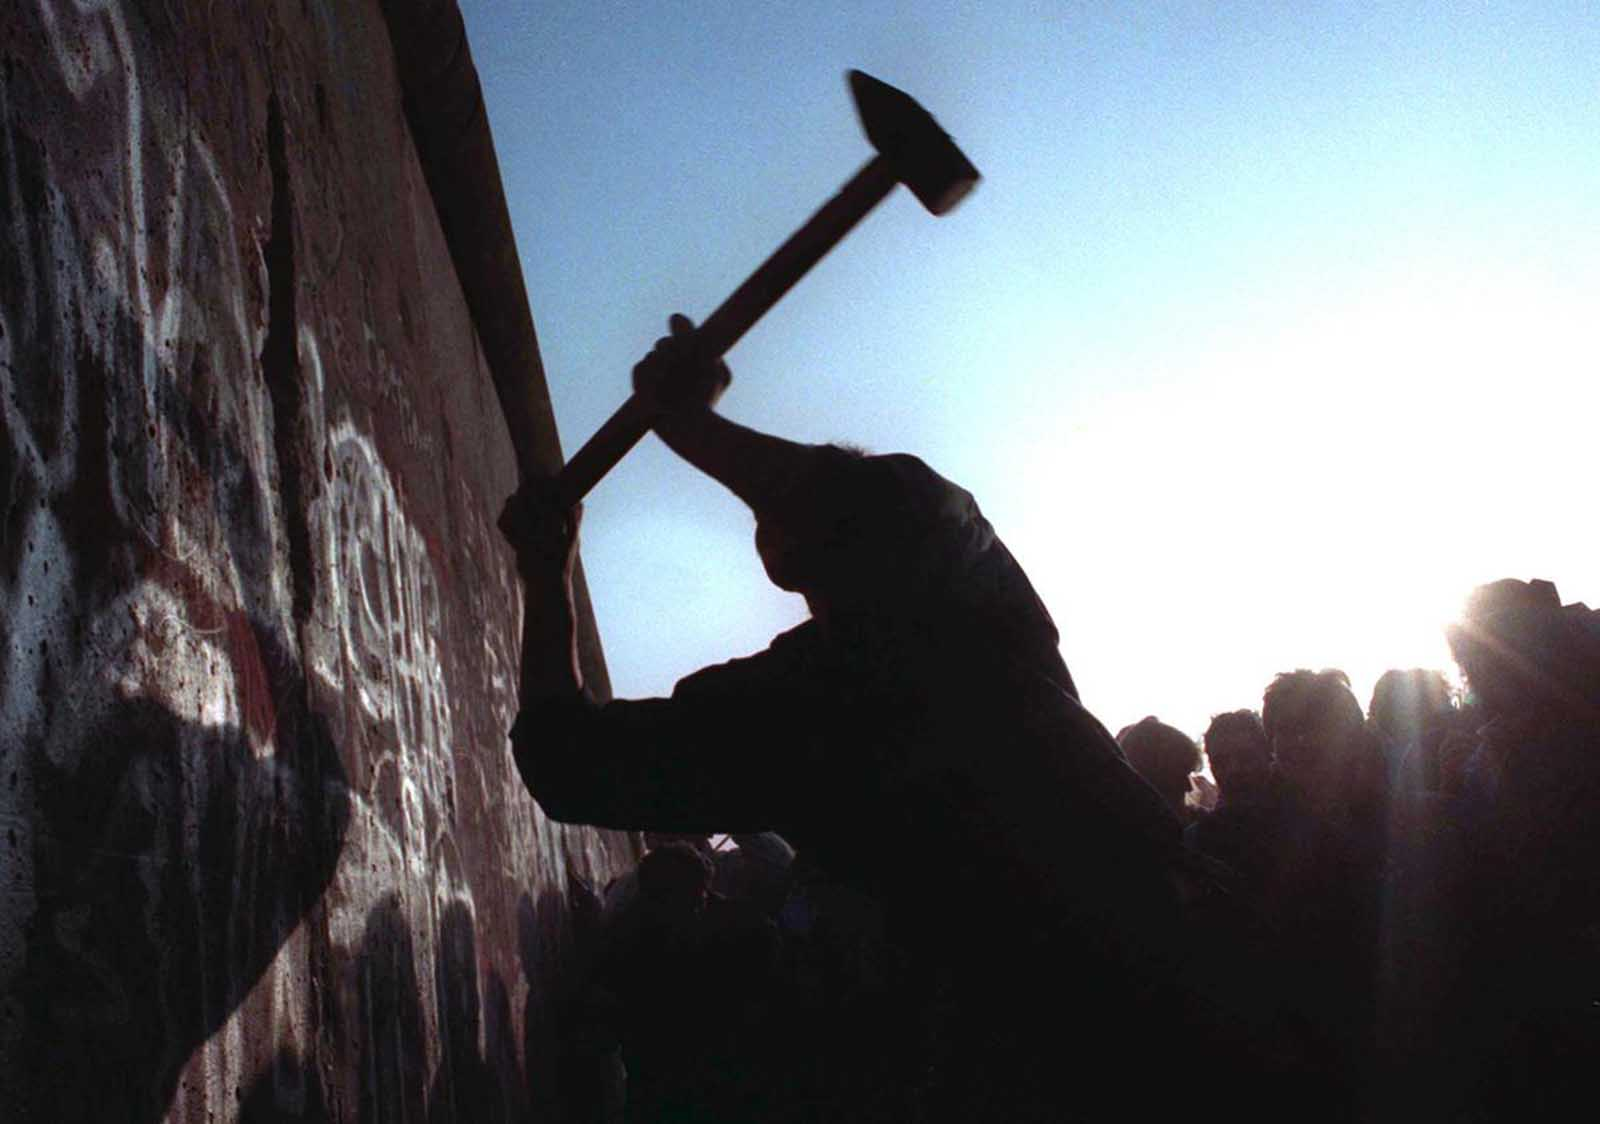 A man hammers away at the Berlin Wall on November 12, 1989 as the border barrier between East and West Germany was torn down.